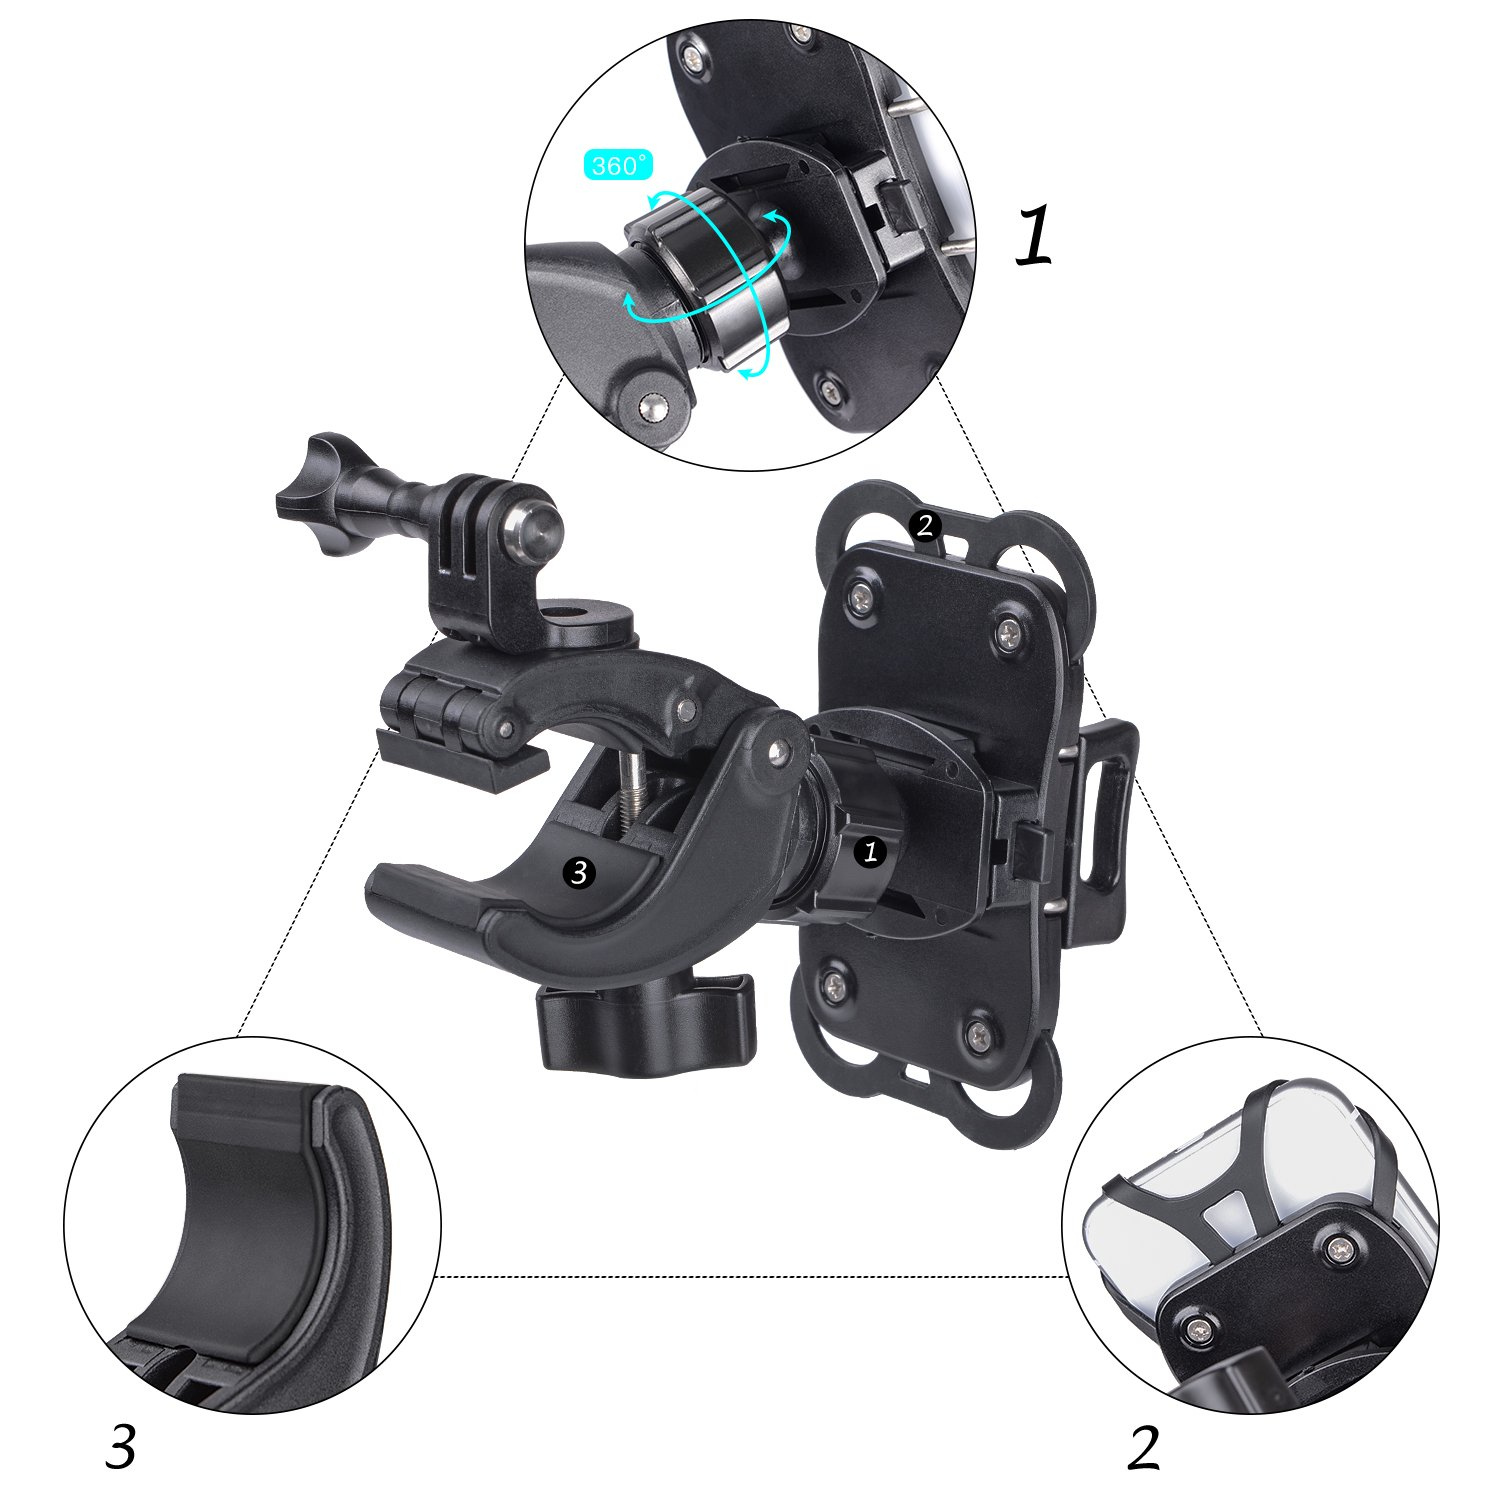 YELIN Bike Phone Mount Motorcycle Phone Holder Bike Camera Mount 2 in 1 Bicycle Holder Handlebar Clamp for Gopro Action Cam iPhone X 8 7 7 Plus 7s 6s Samsung Phone by YELIN (Image #3)